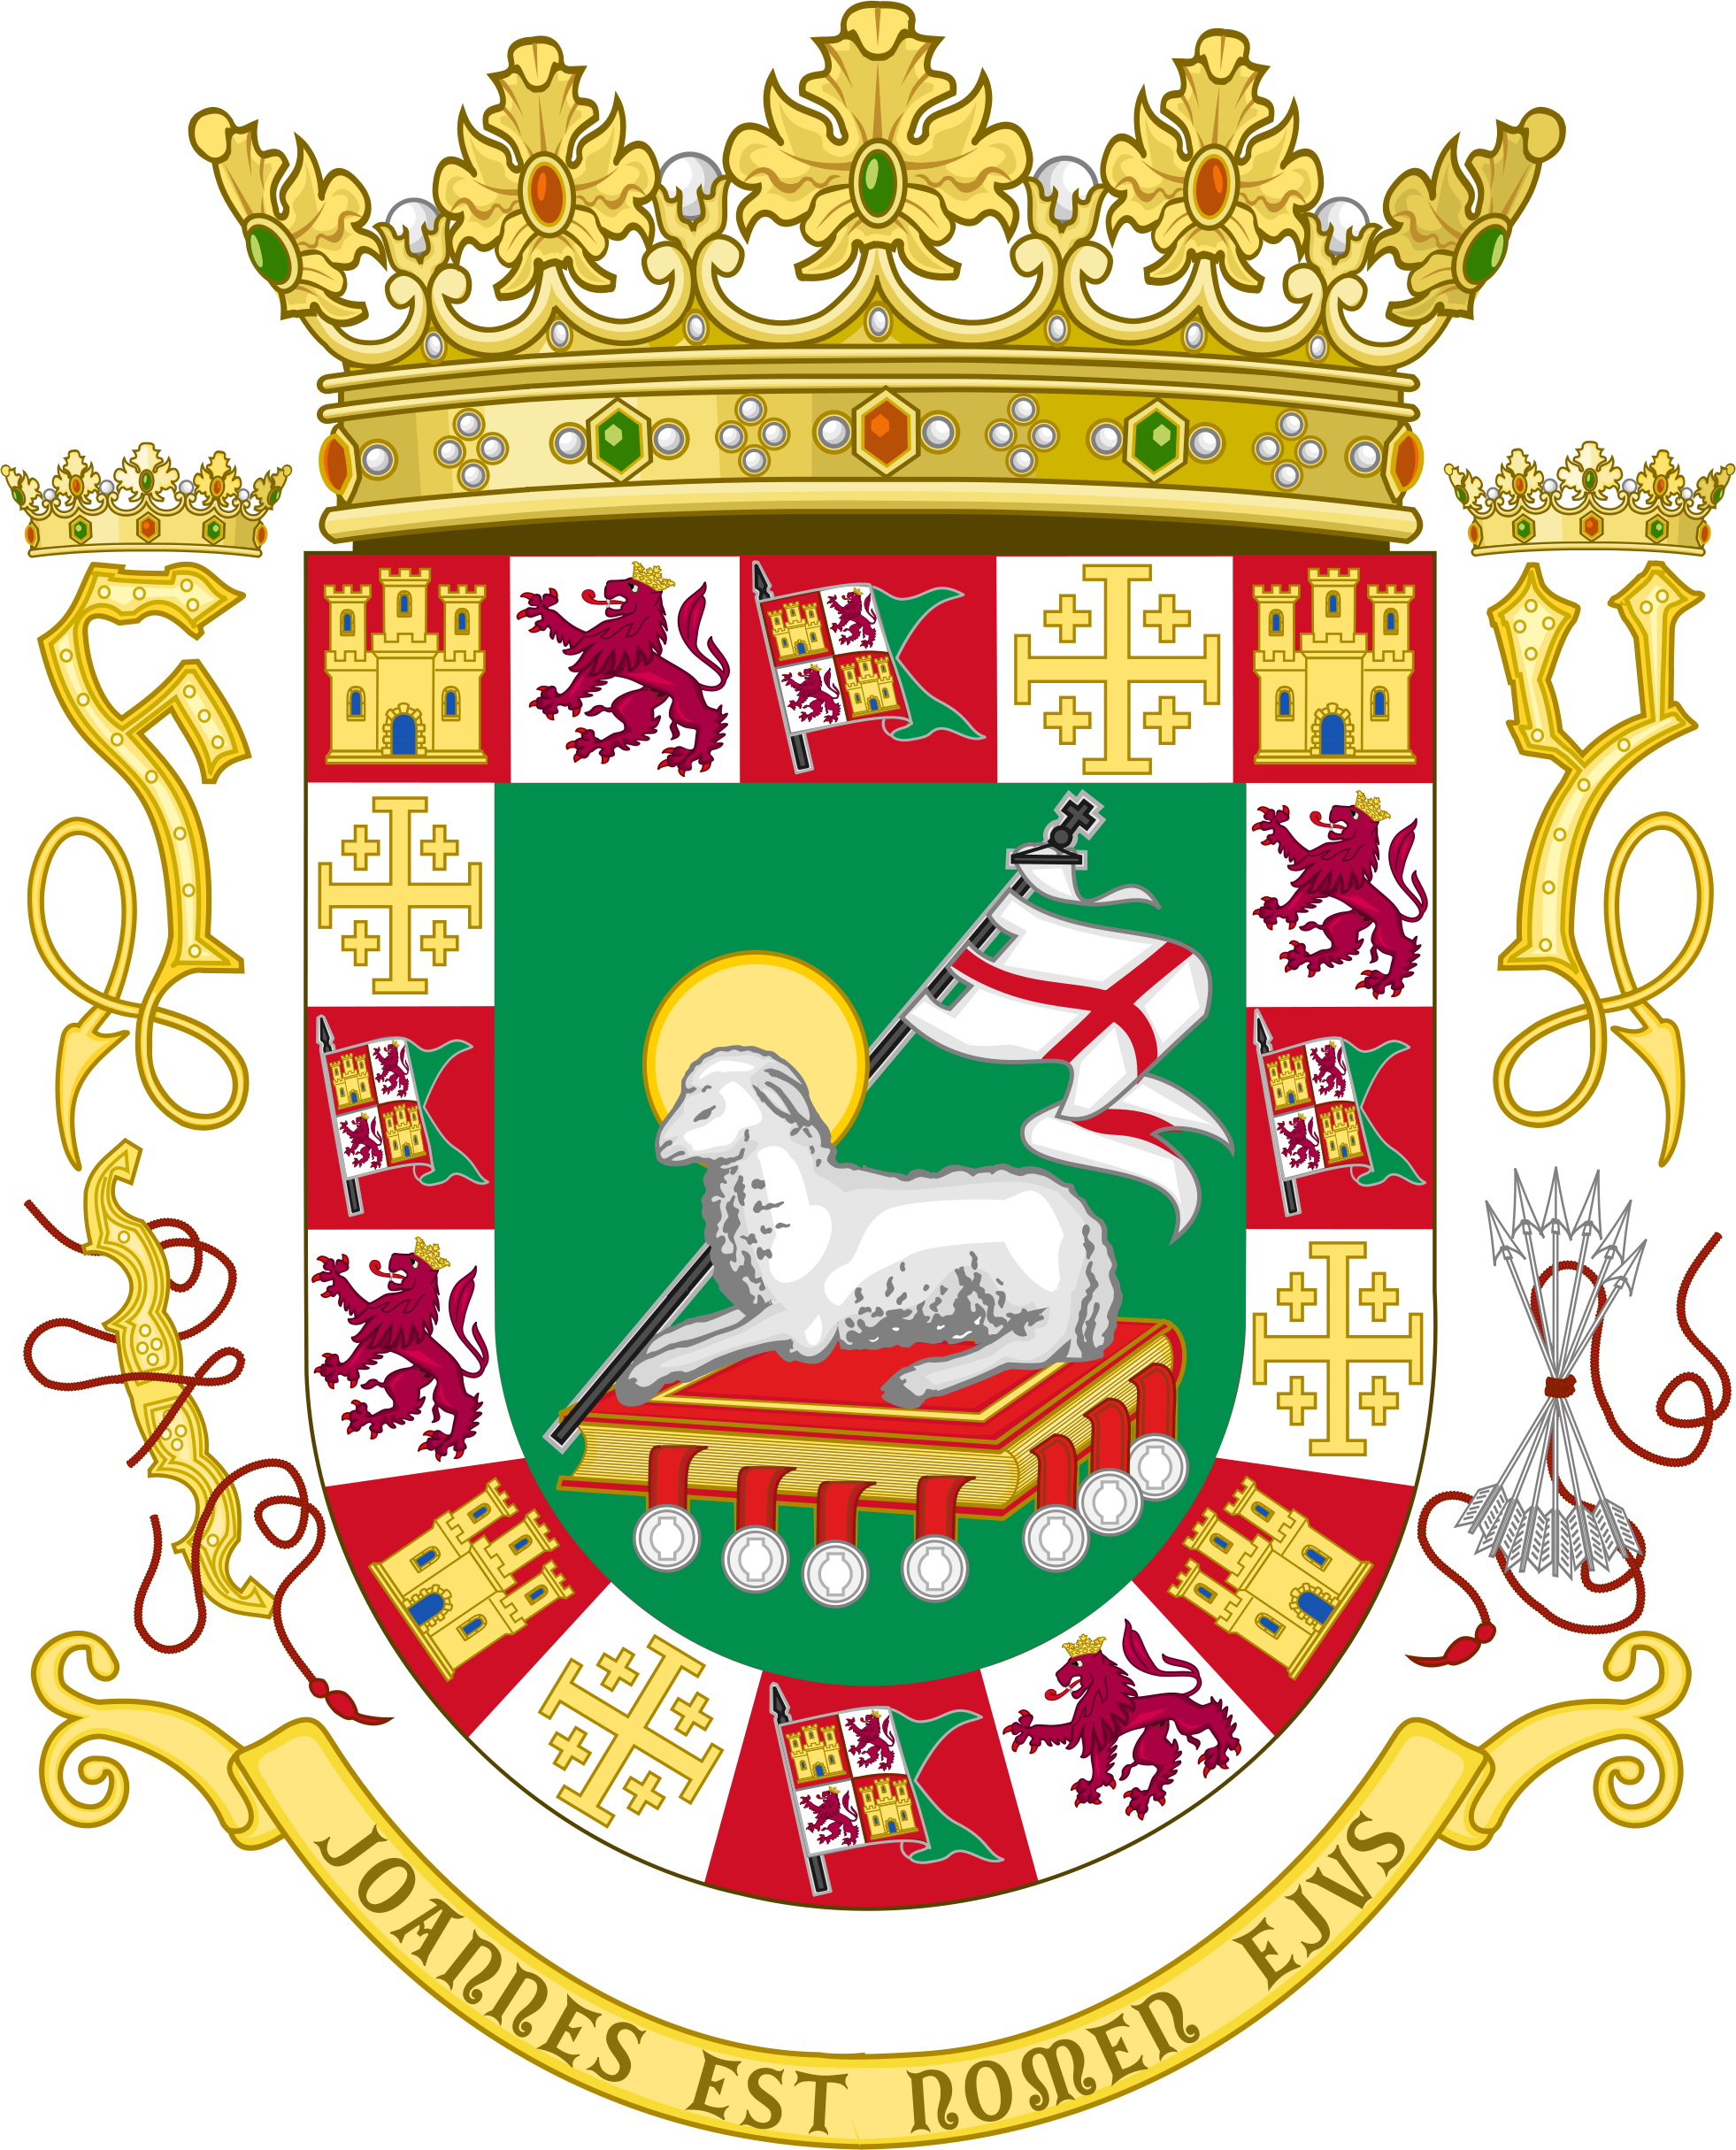 Coat of Arms granted to the island of Puerto Rico in the year 1511 by the Catholic Monarch of Castile and León.